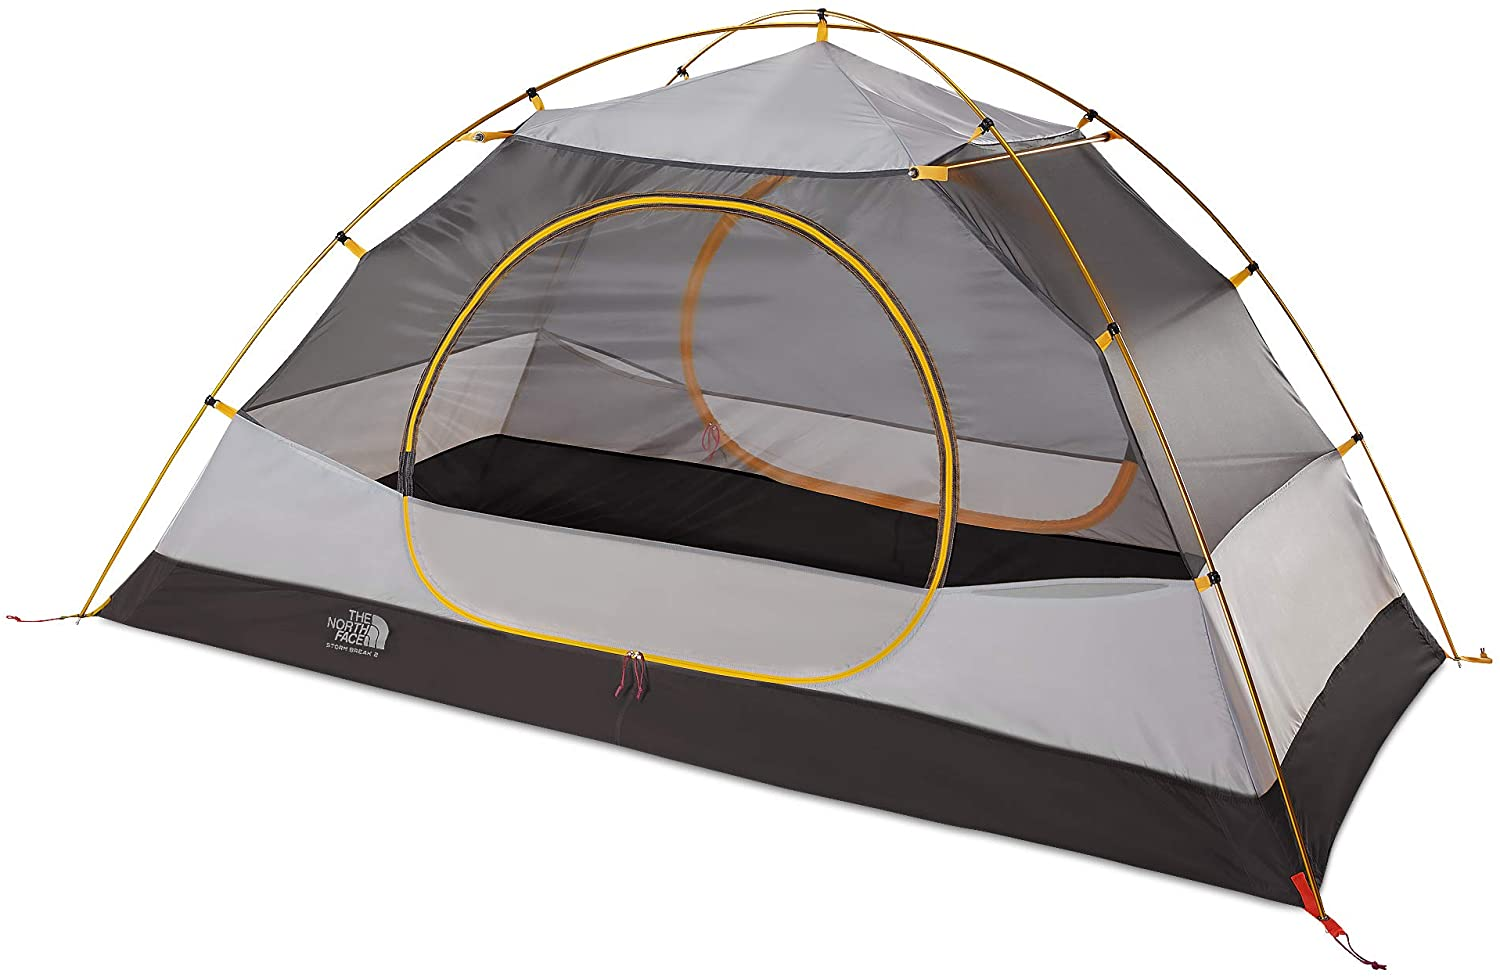 Top 10 Best Tents for High Winds 2020 Reviews 13